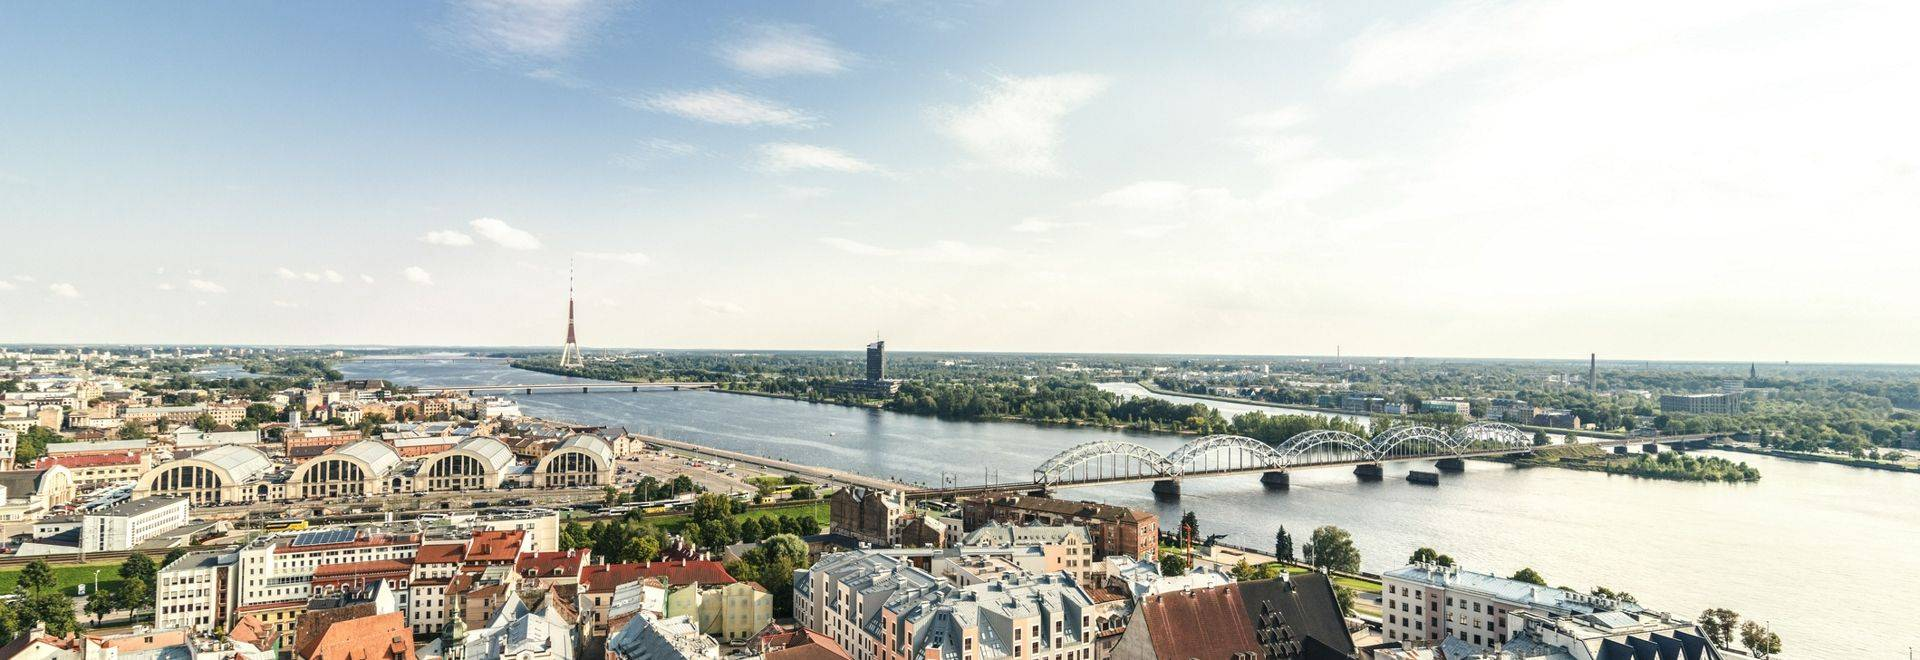 GettyImages-709125603 Latvia, Riga, cityscape with old town, and bridges over Daugava River.jpg